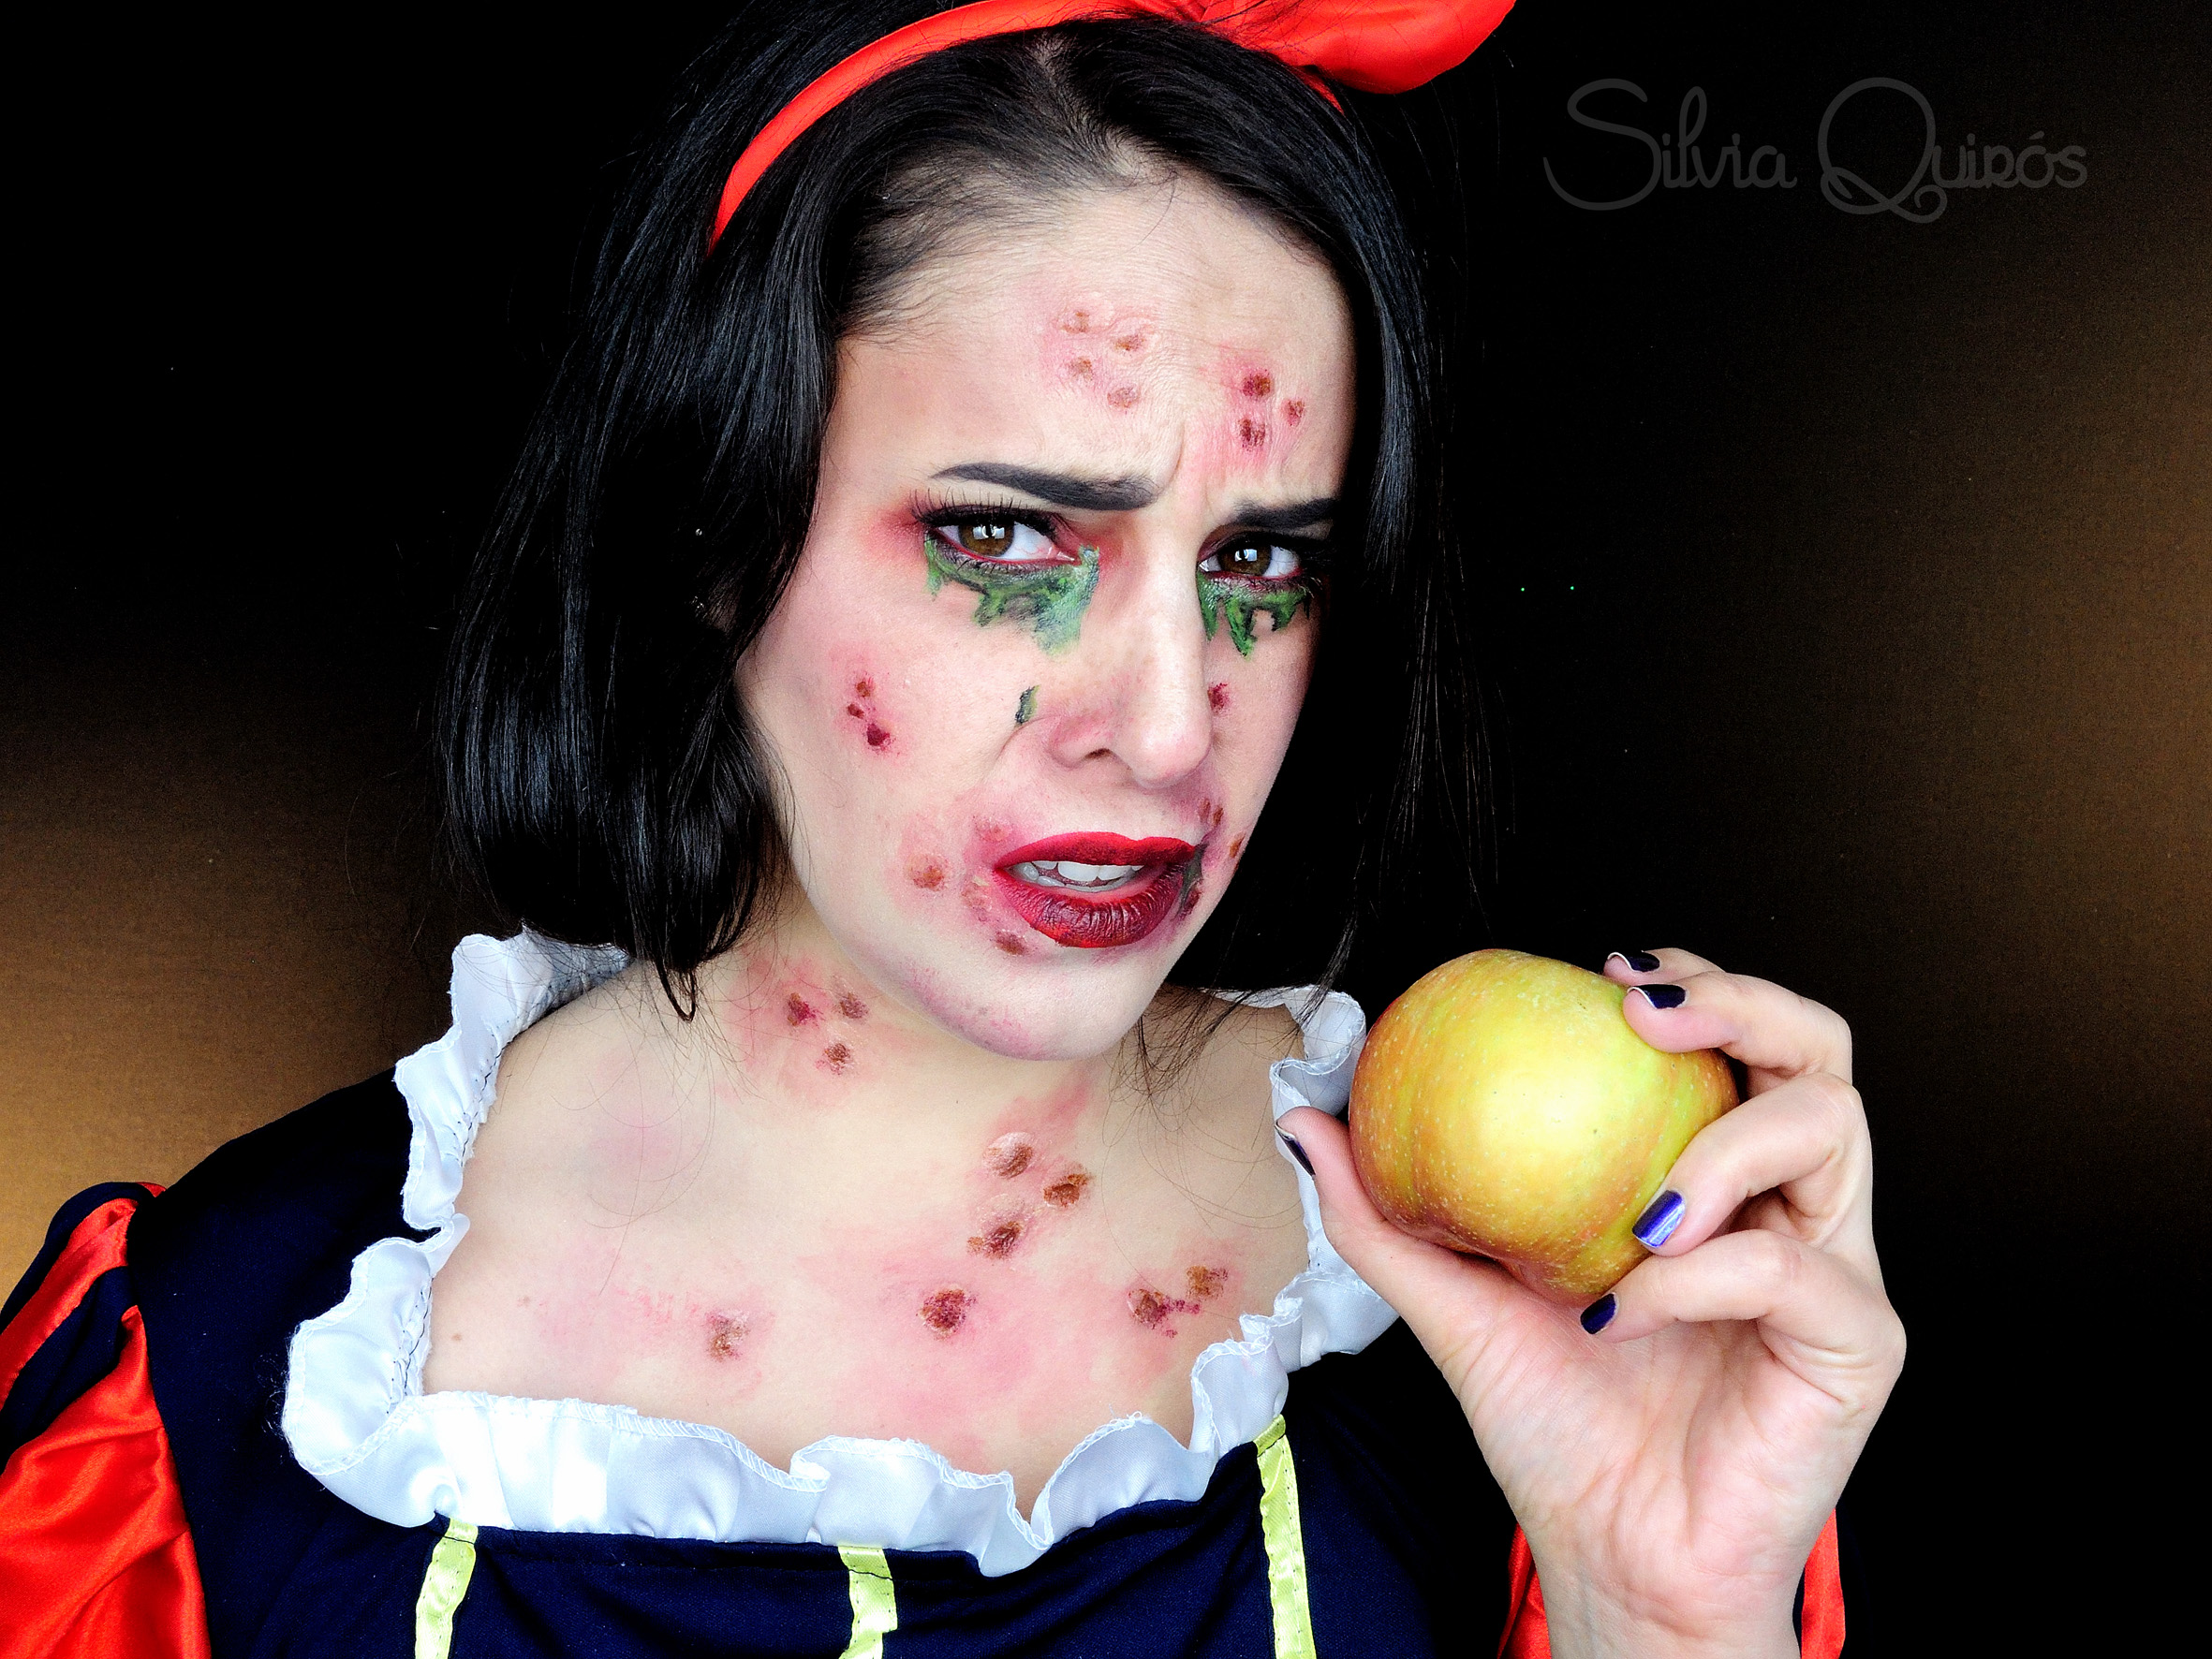 Poisoned snow white special effects makeup tutorial silvia quirs poisoned snow white special effects makeup tutorial poisoned snow white special effects makeup tutorial baditri Choice Image